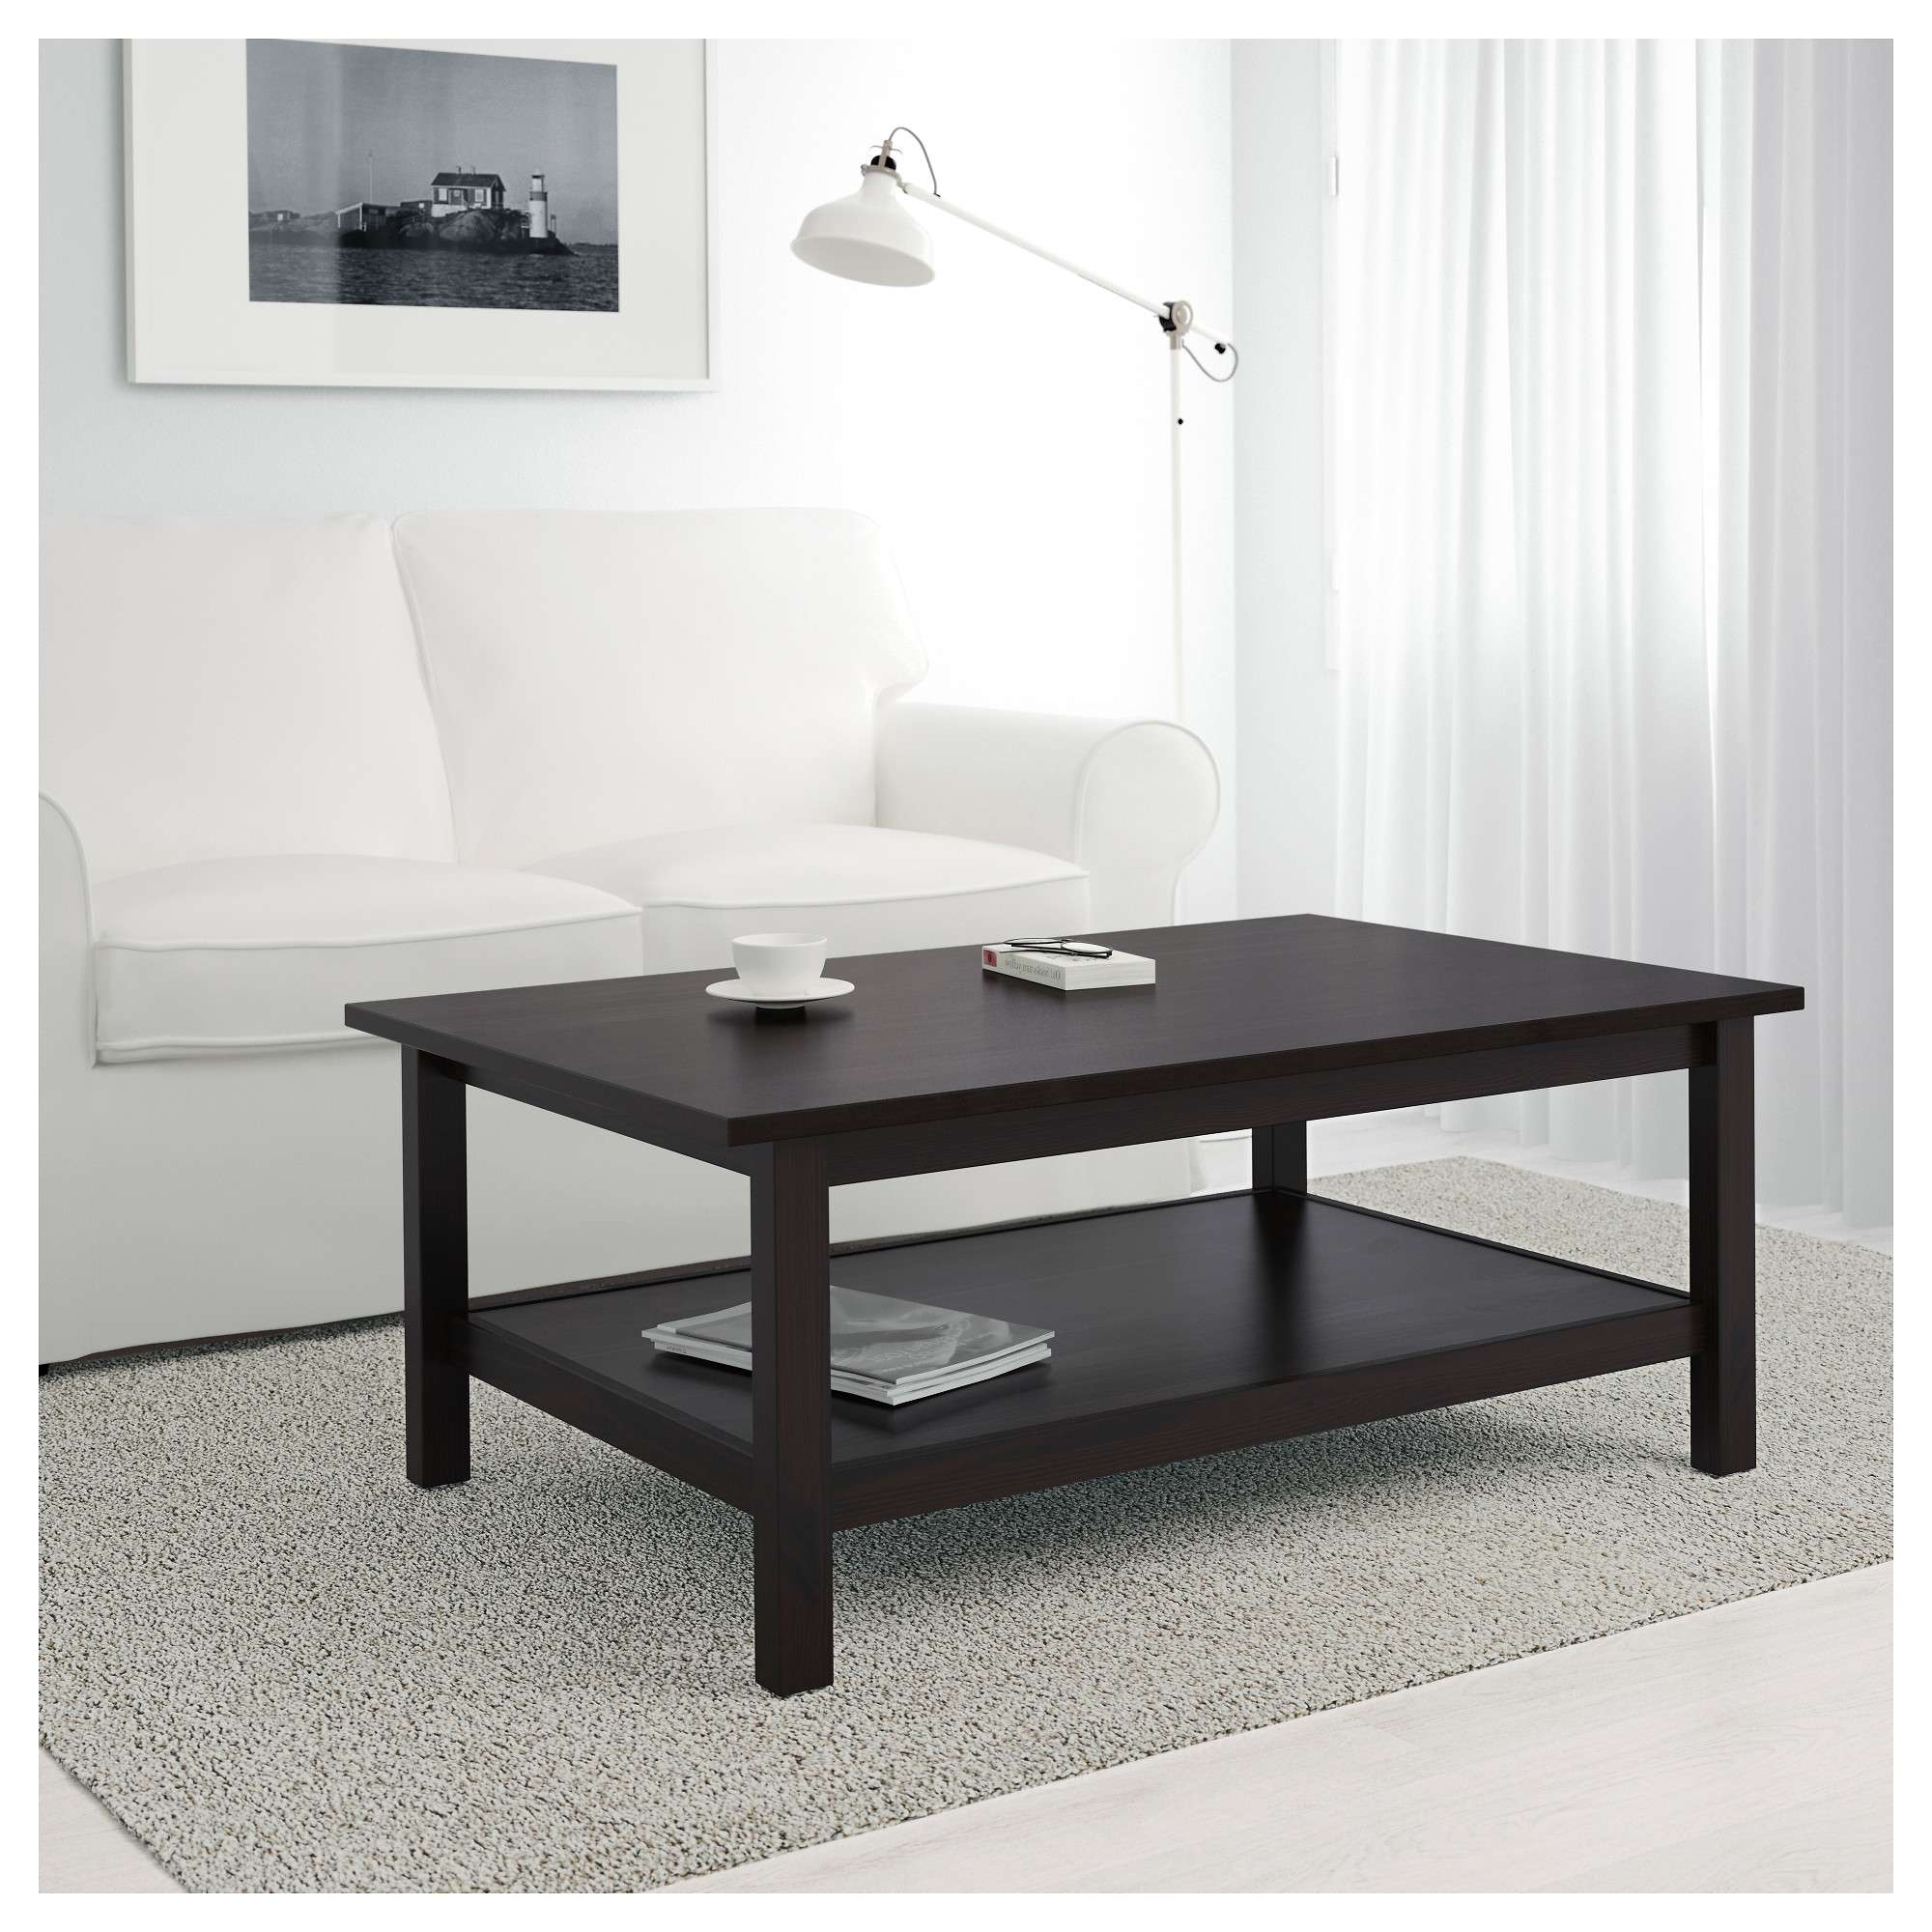 Hemnes Coffee Table – White Stain – Ikea Intended For Latest White And Brown Coffee Tables (View 20 of 20)